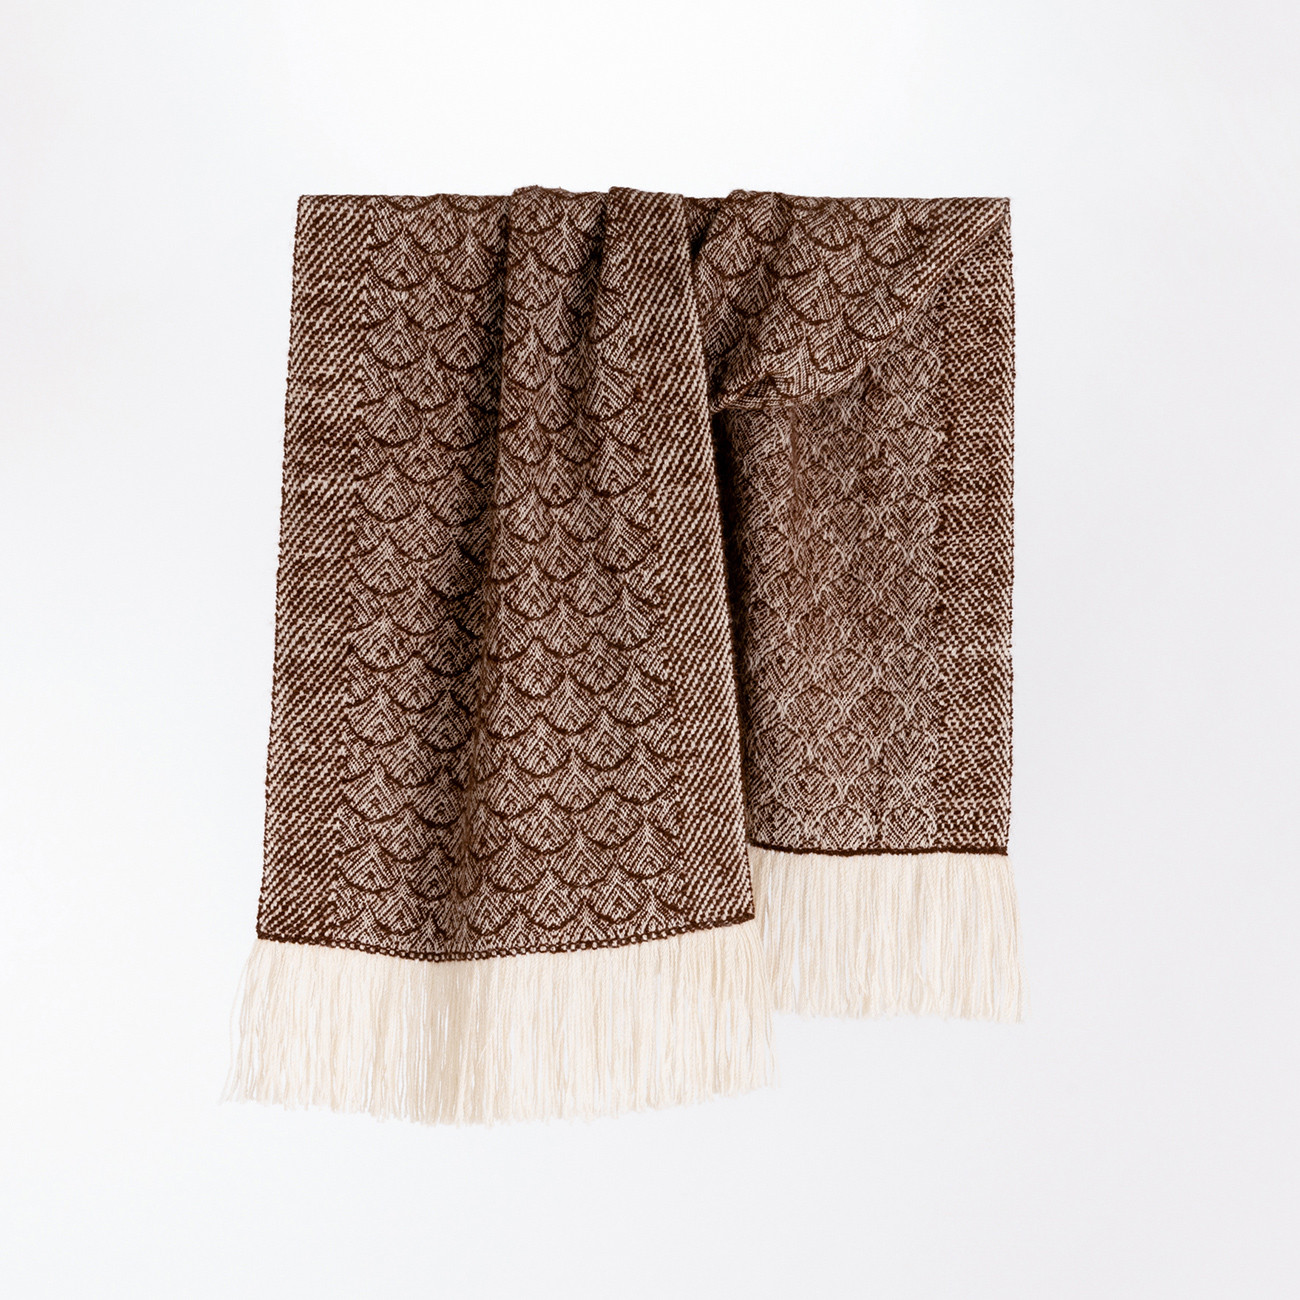 Handwoven Feather Wide Scarf - Natural Coffee and Cream Alpaca - 0